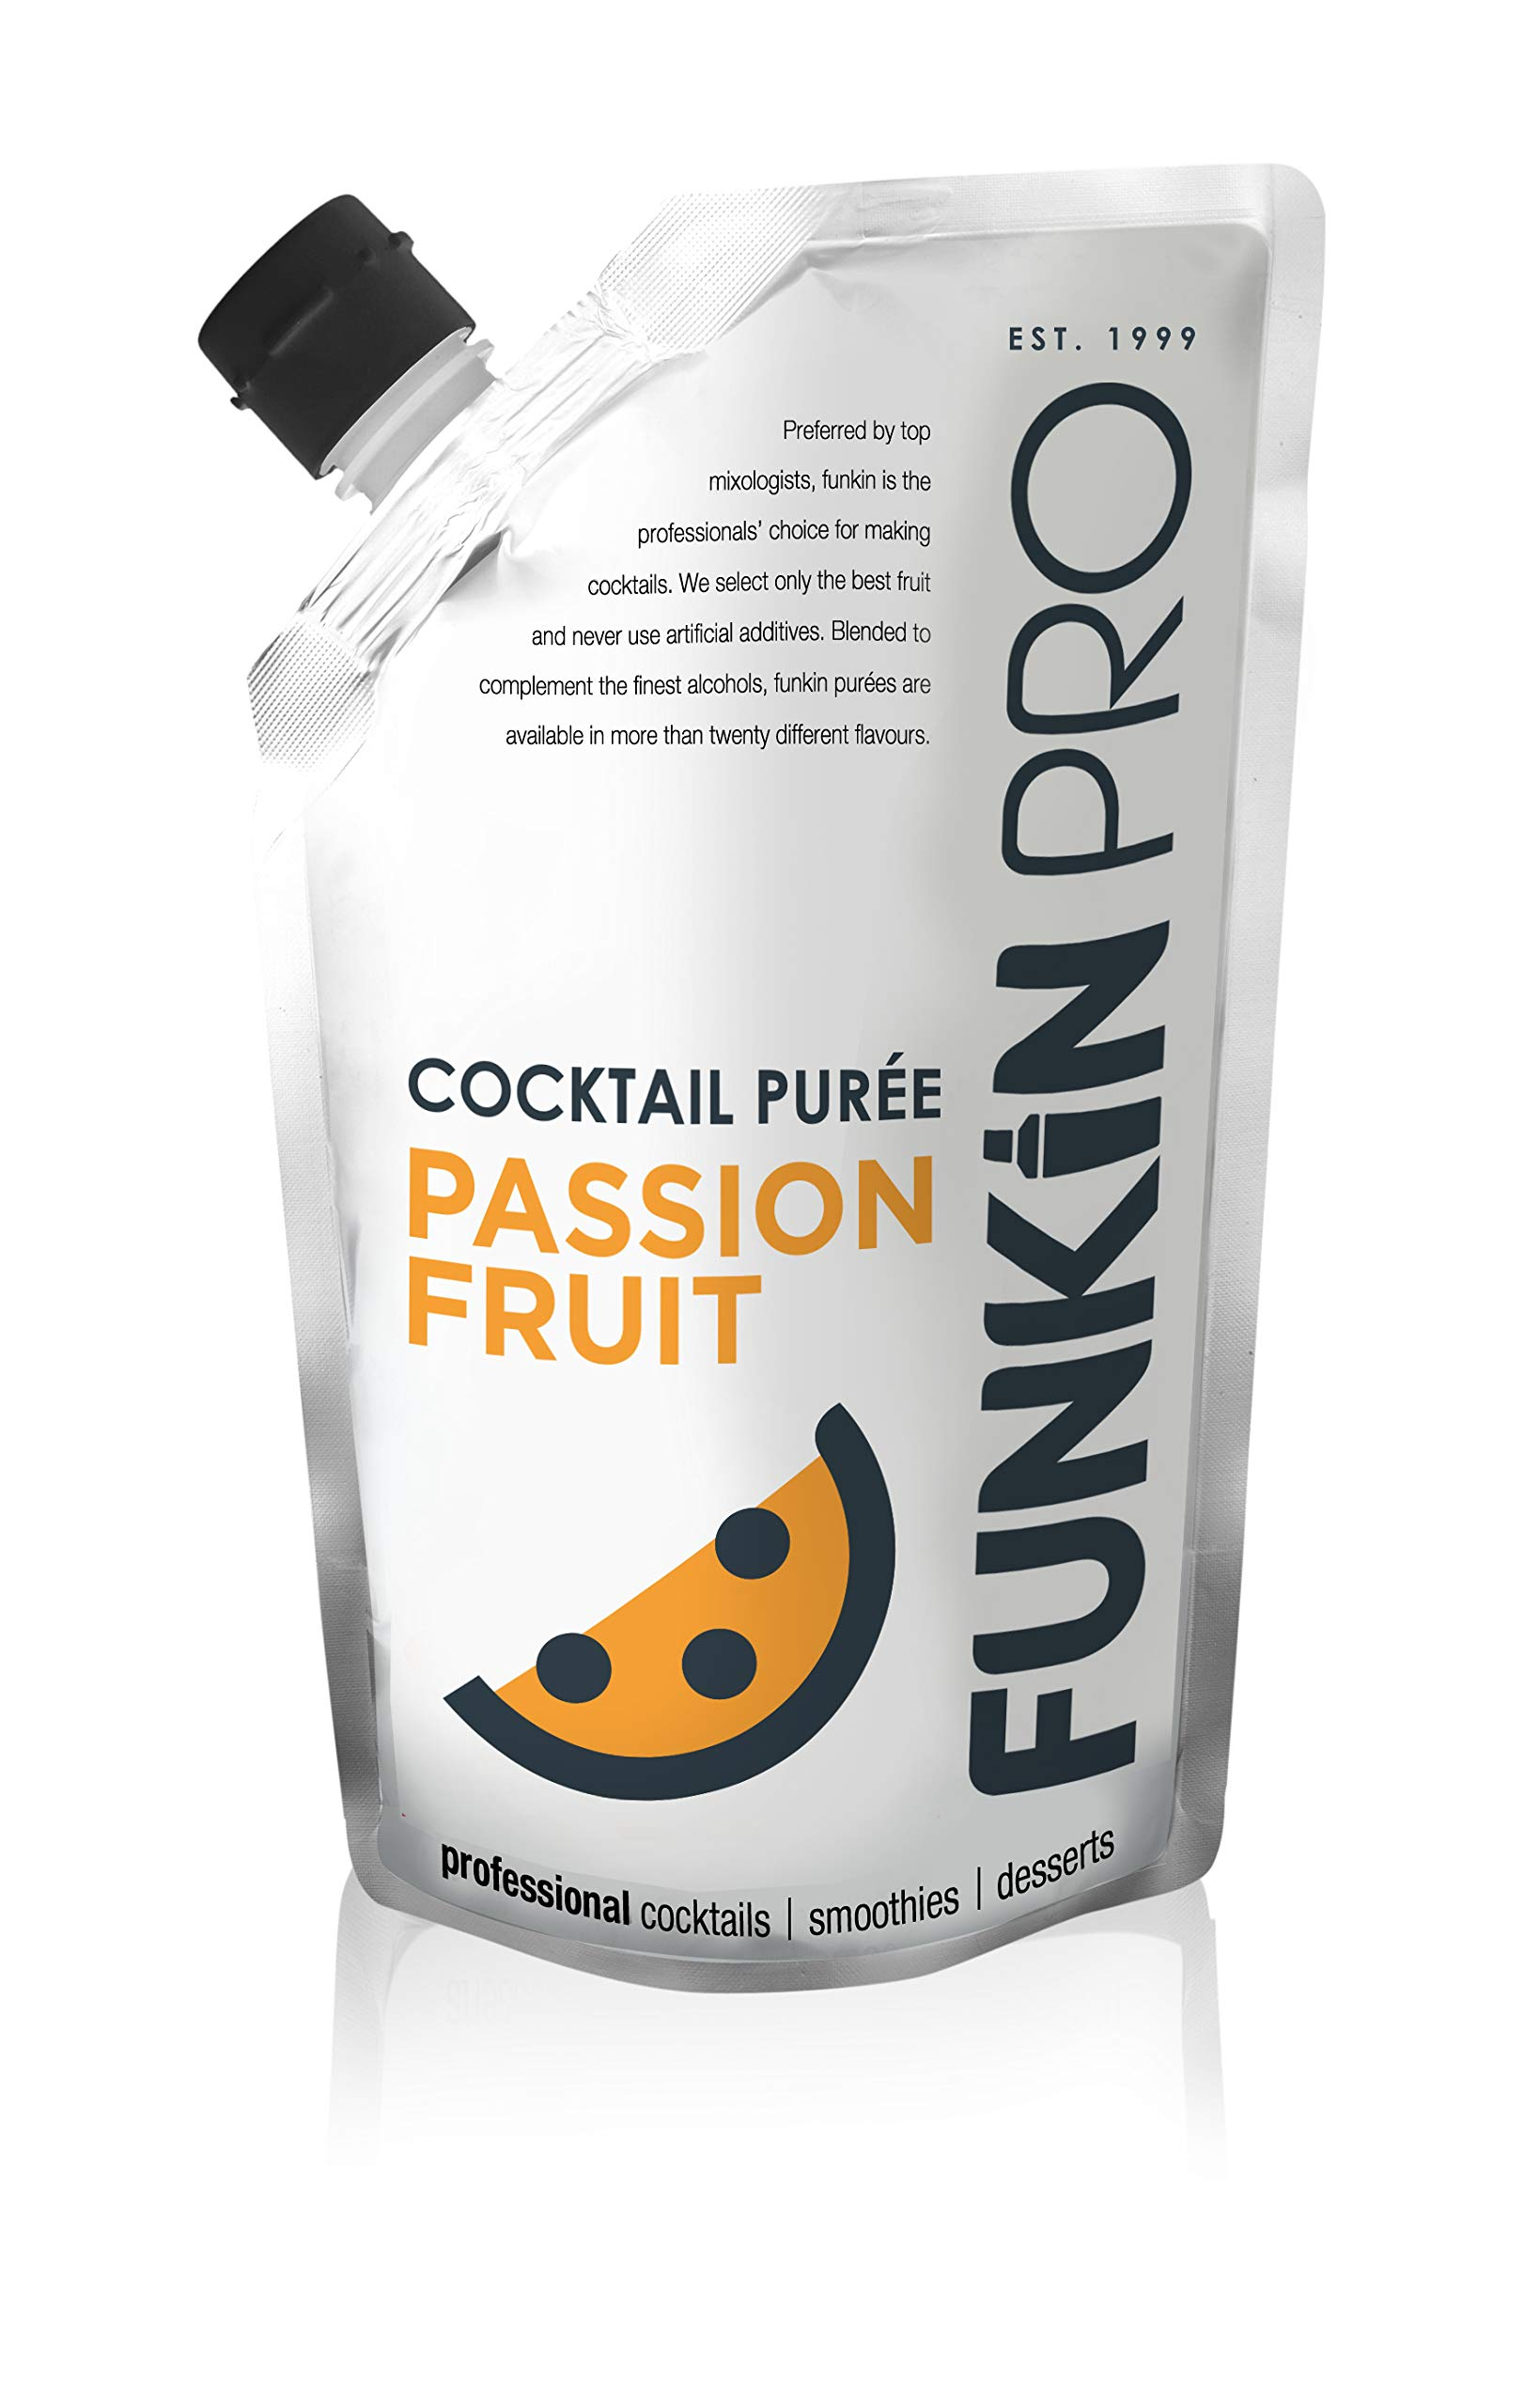 Funkin Passion Fruit Puree | Real Fruit, Two Ingredient, Natural Mixer for Cocktails, Drinks, Smoothies | Vegan, Non-GMO, Gluten-Free (2.2 lbs) by Funkin